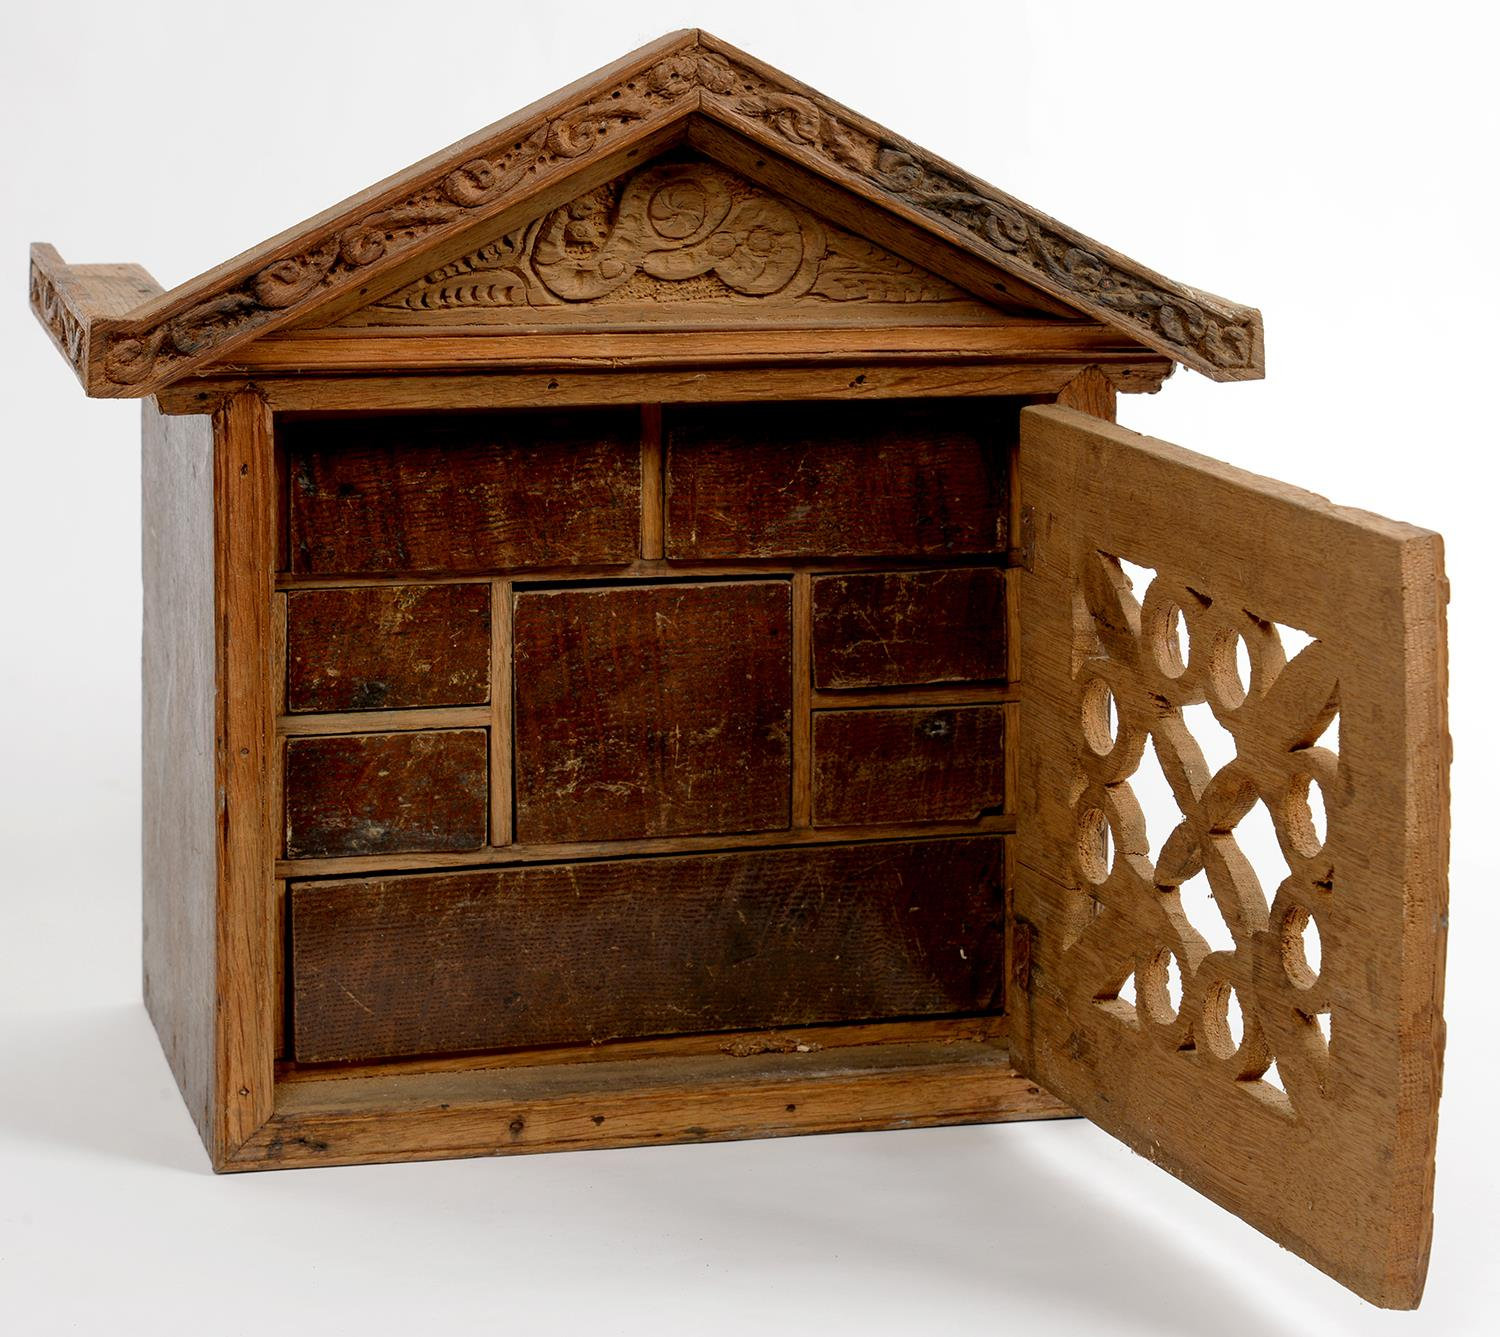 Lot 350 - MINIATURE FURNITURE. A ENGLISH MID 17TH C STYLE BOARDED  OAK  SPICE CUPBOARD WITH TRIANGULAR